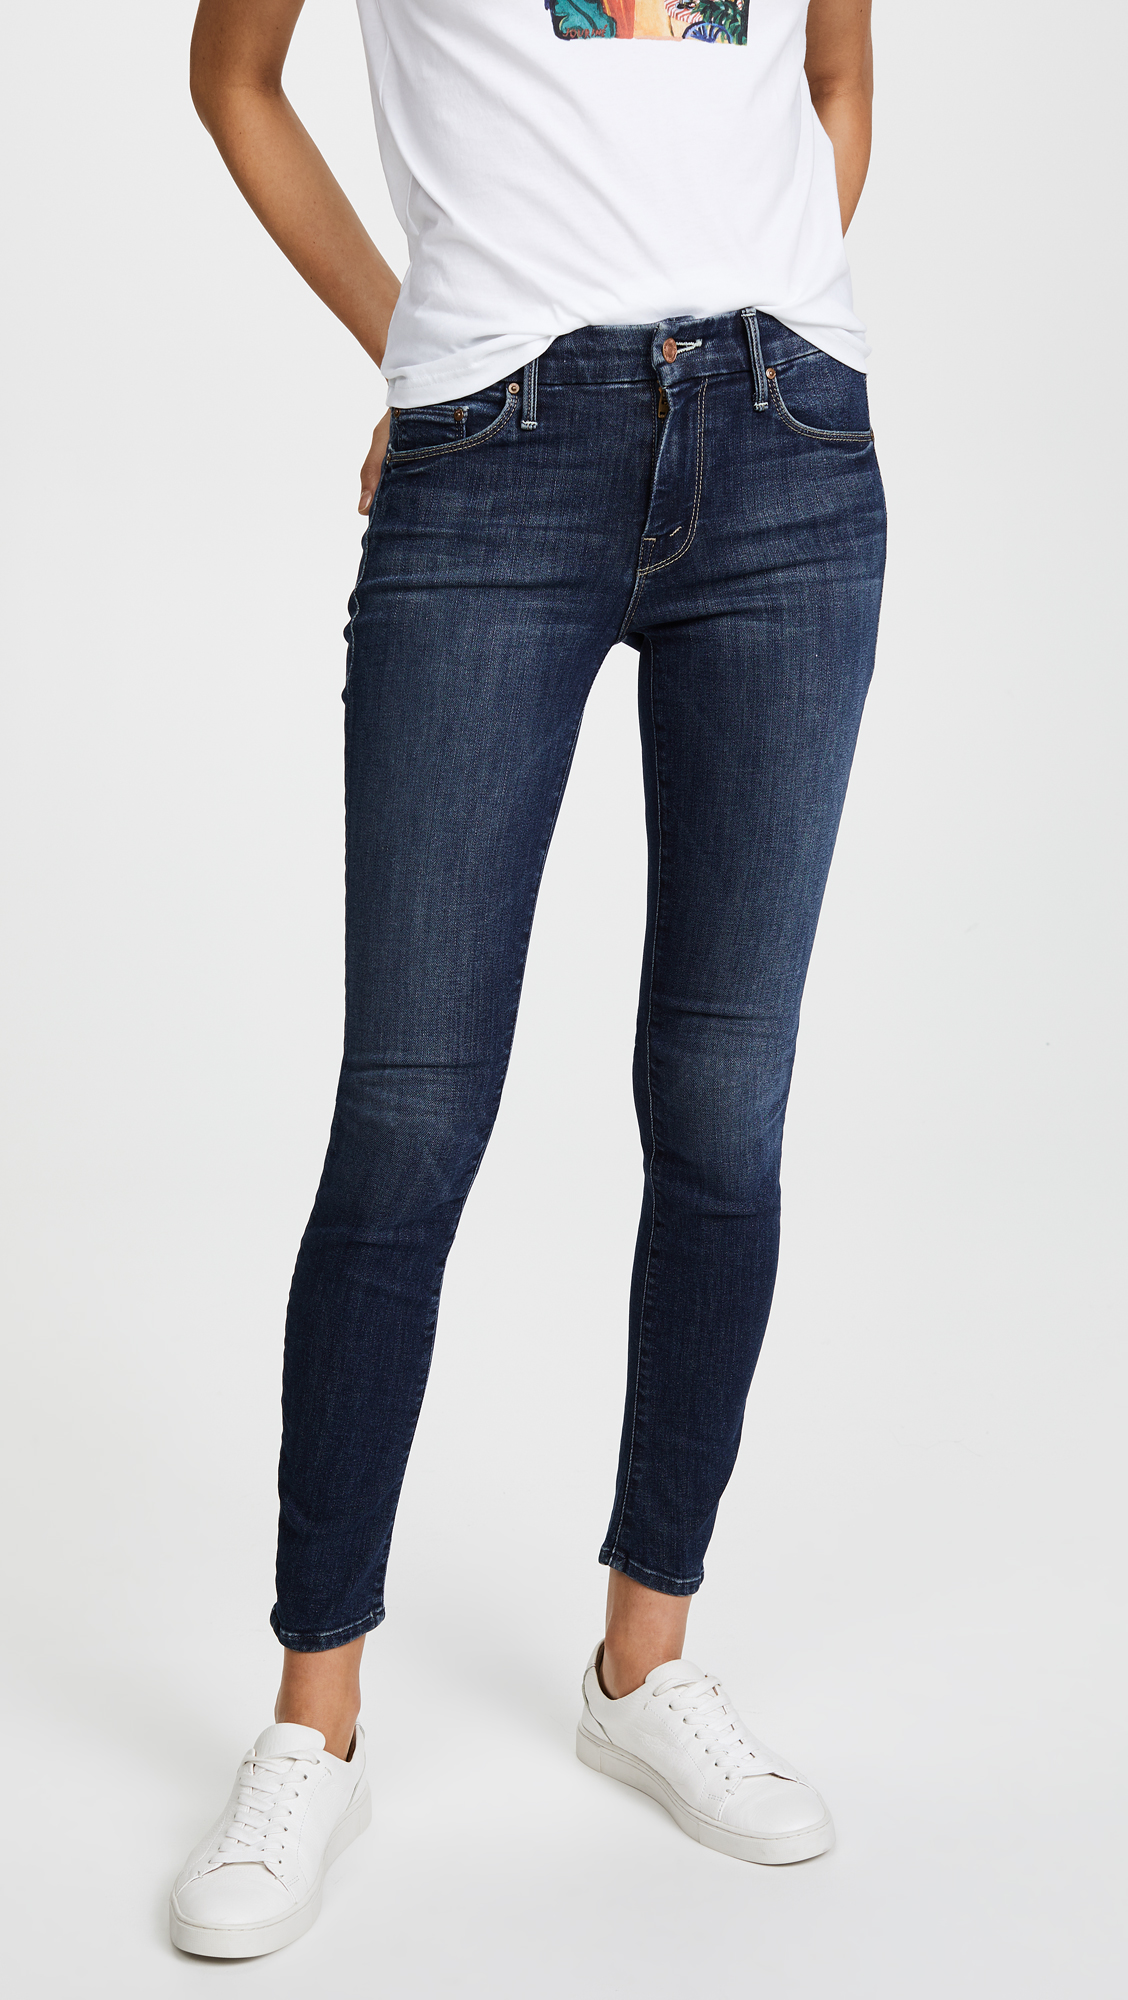 Discussion on this topic: Buy Better Jeans With The 6 Cs , buy-better-jeans-with-the-6-cs/